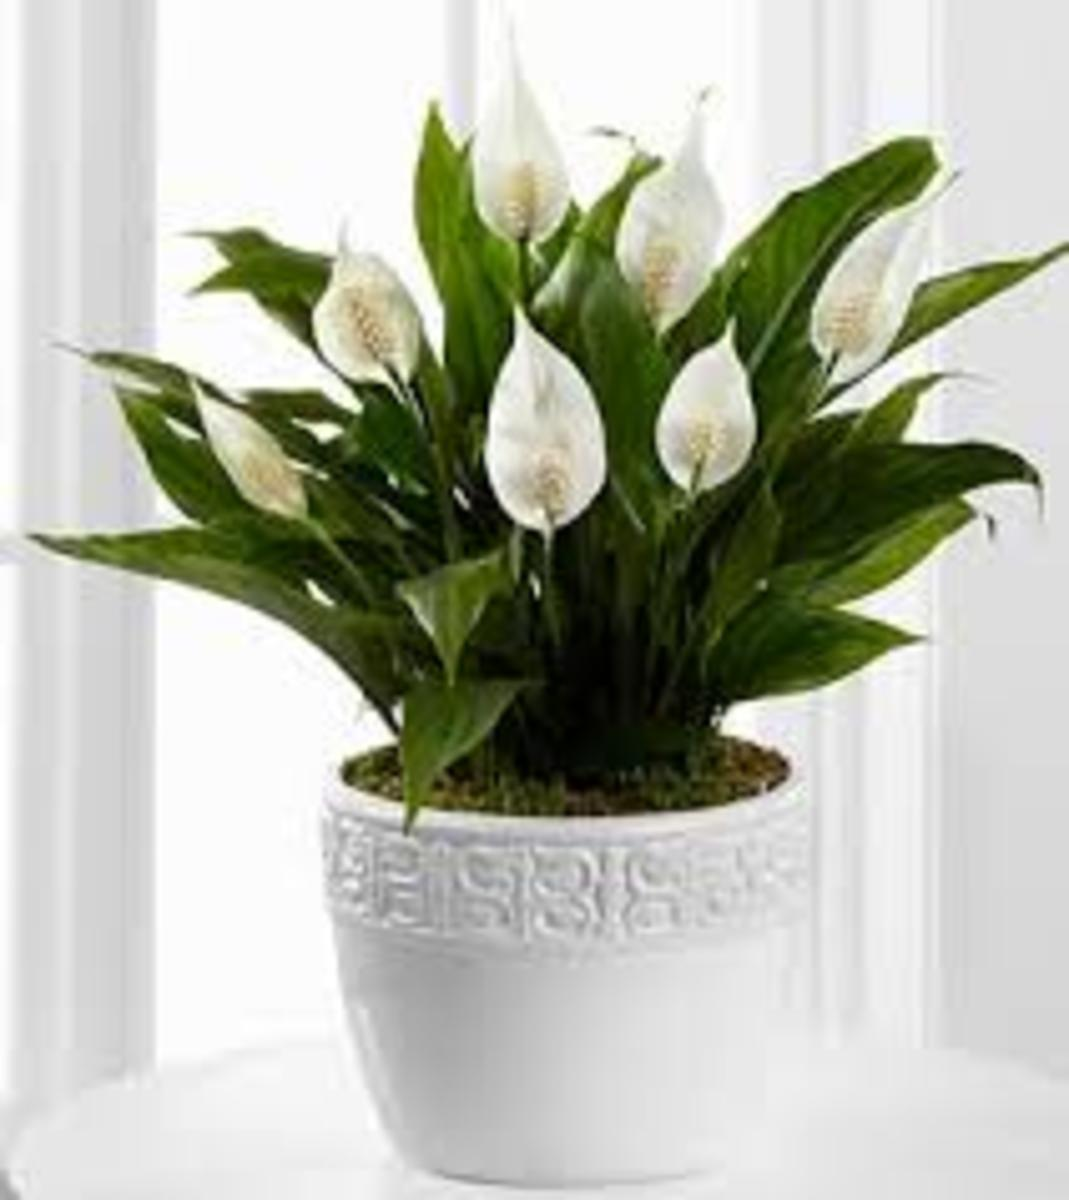 A Peace lily showing off